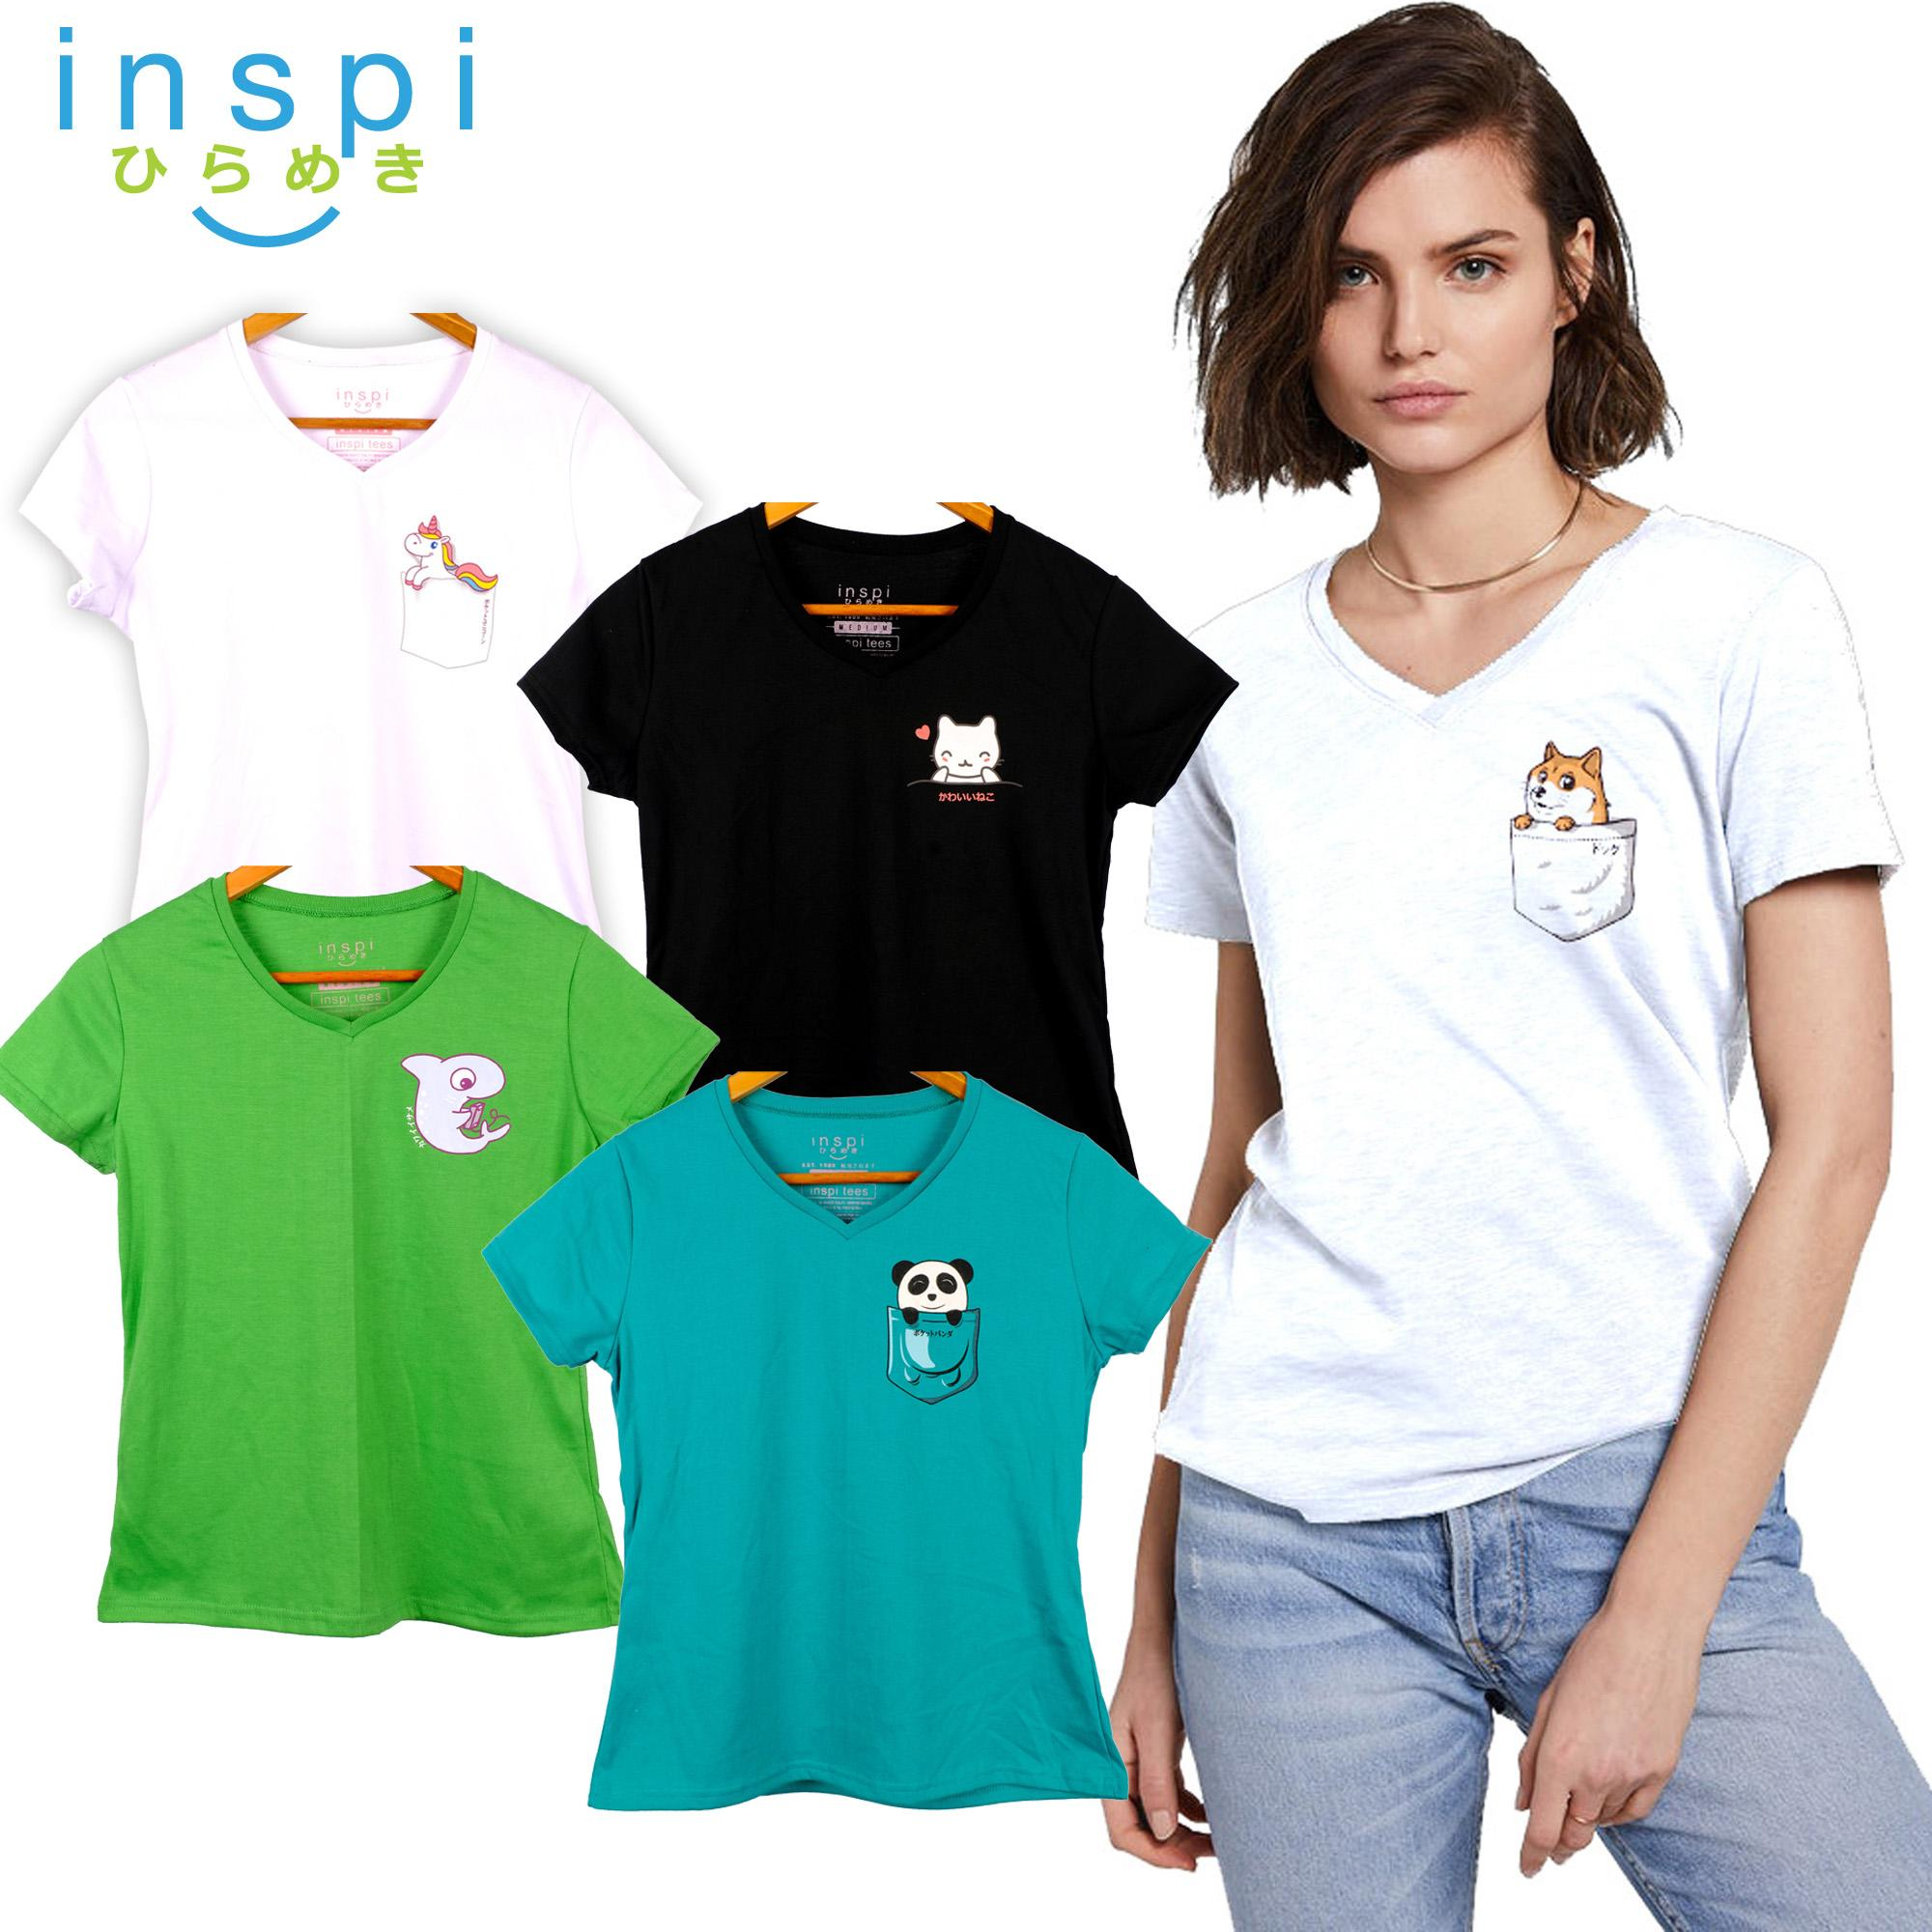 e21f729e4b INSPI Tees Ladies Semi Fit Pocket Friends Collection tshirt printed graphic tee  t shirt shirts tshirts